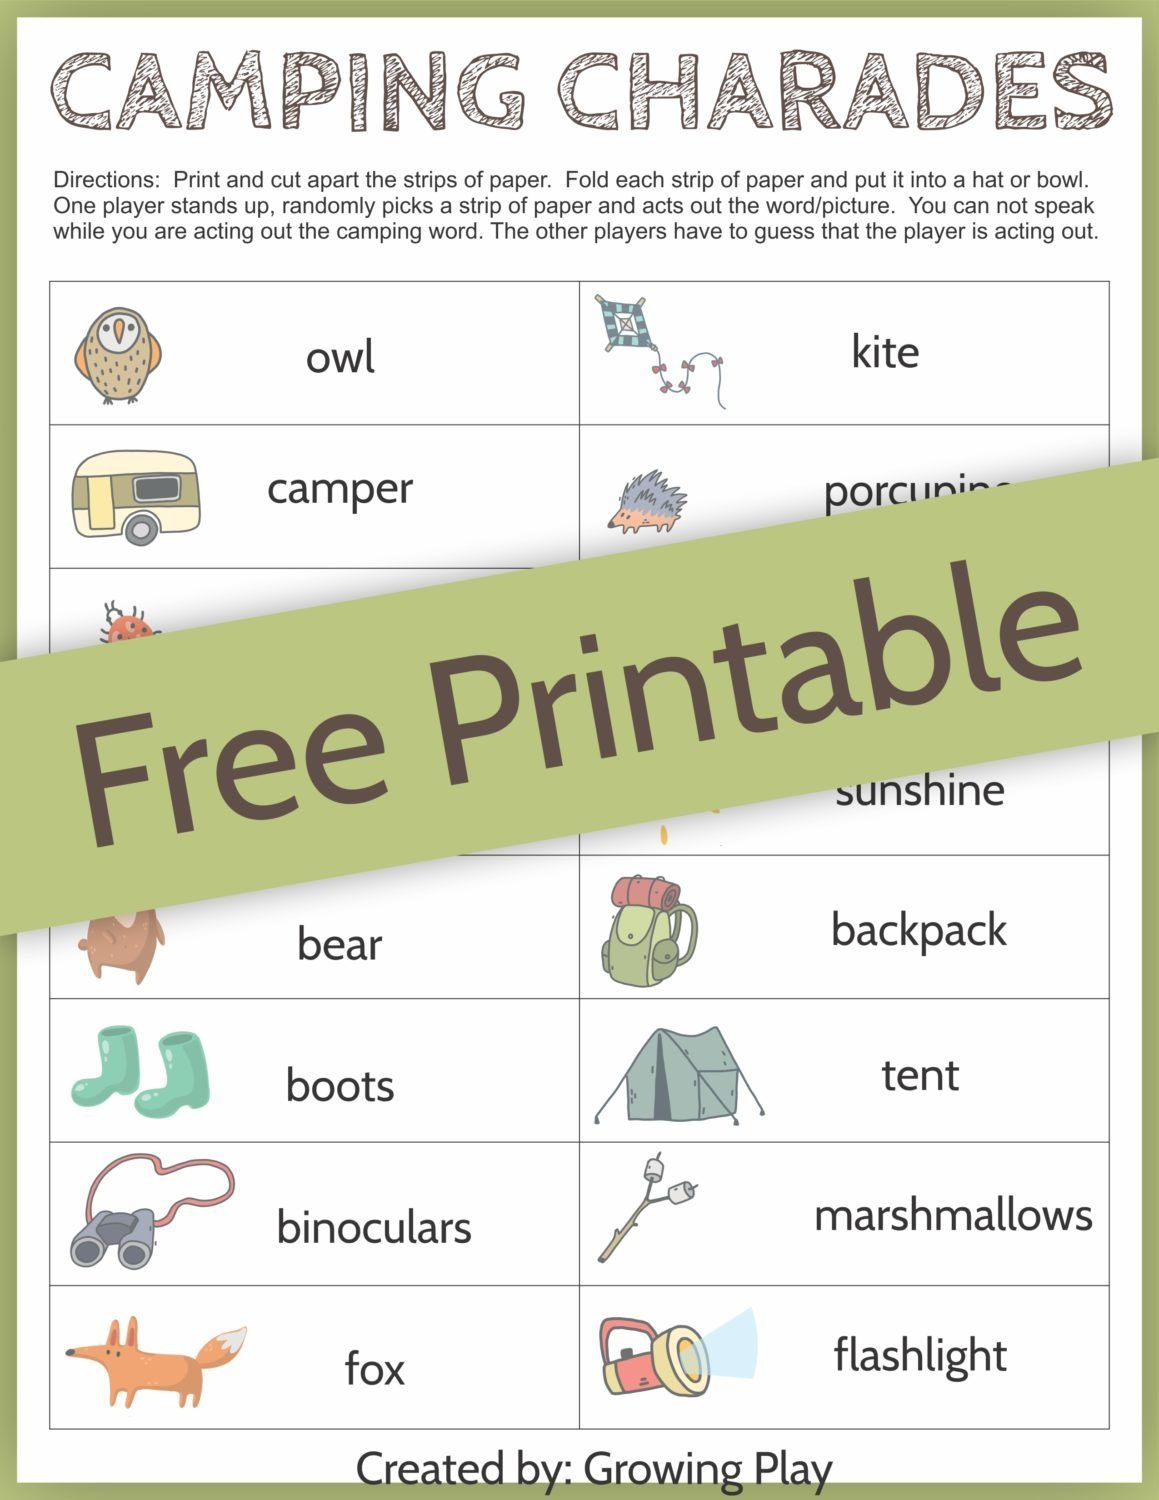 Camping Charades Game For Kids - Free Printable | Camping | Free - Free Printable Camping Games